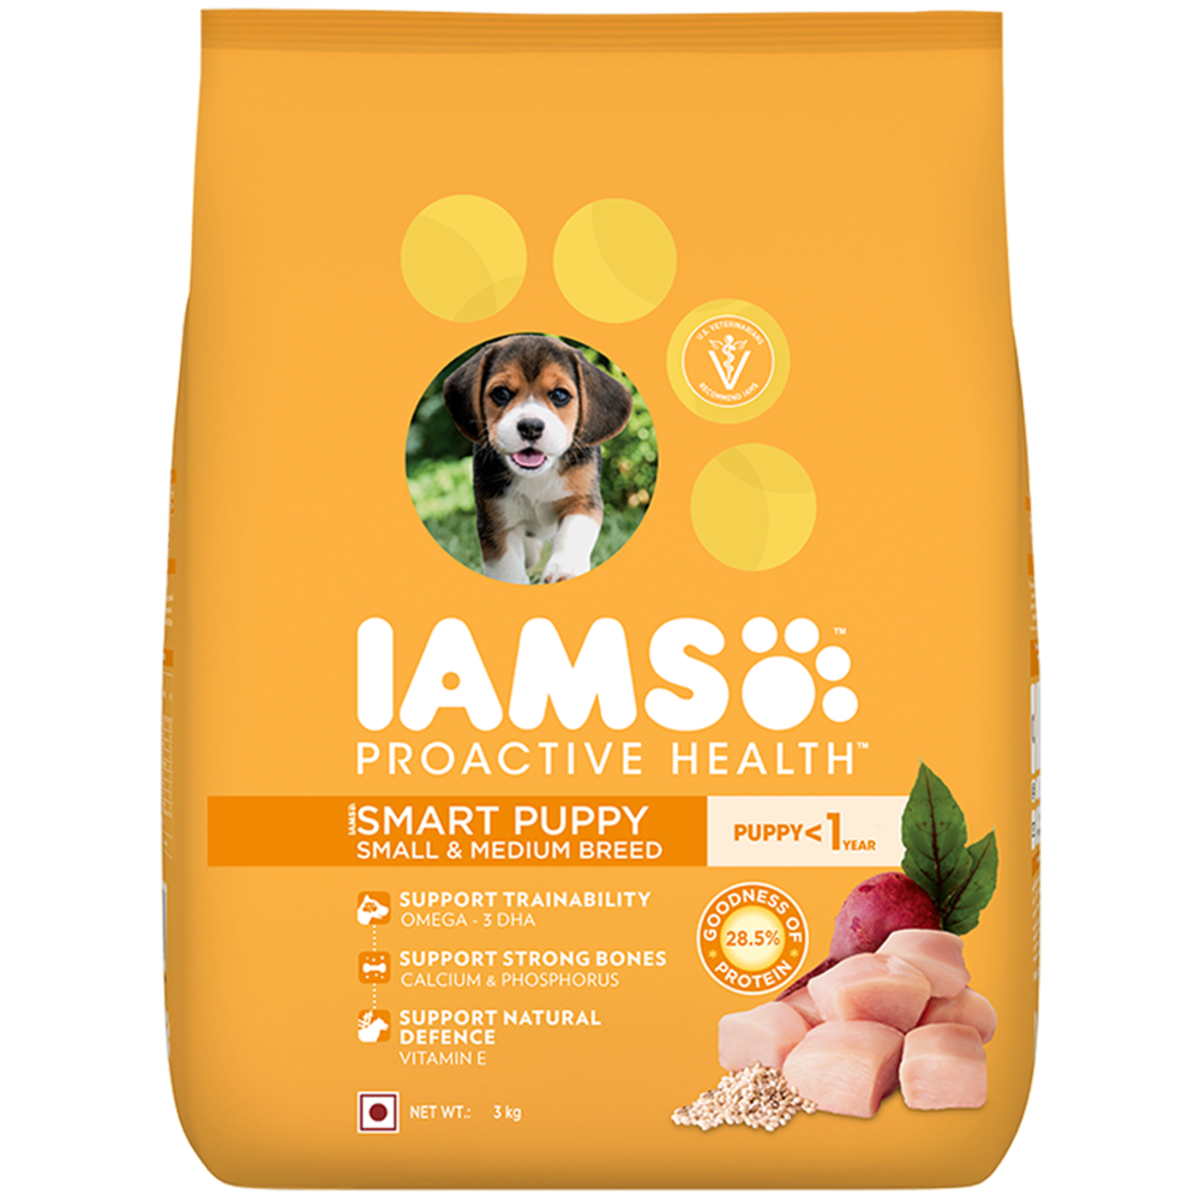 Then I switched to this food which is less expensive than royal canin and my puppies enjoyed it. IAMS brand provides a wide range of different foods for different dogs so that puppies of all shapes, sizes and breeds can have optimum growth.